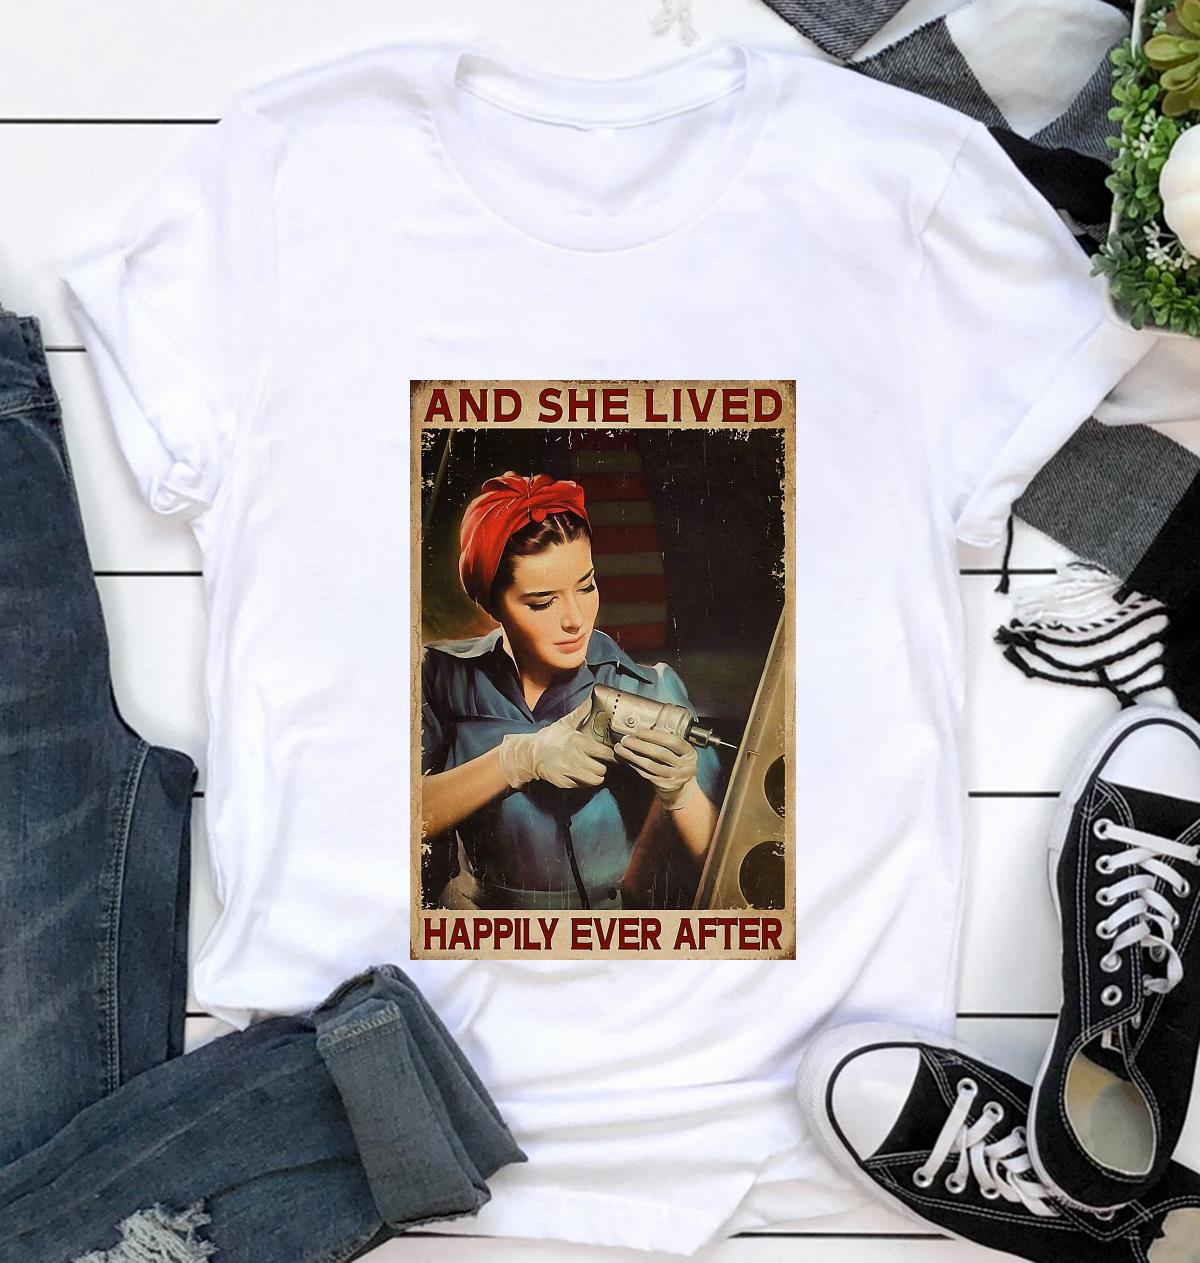 Female Electrician and she lived happily ever after poster canvas t-shirt